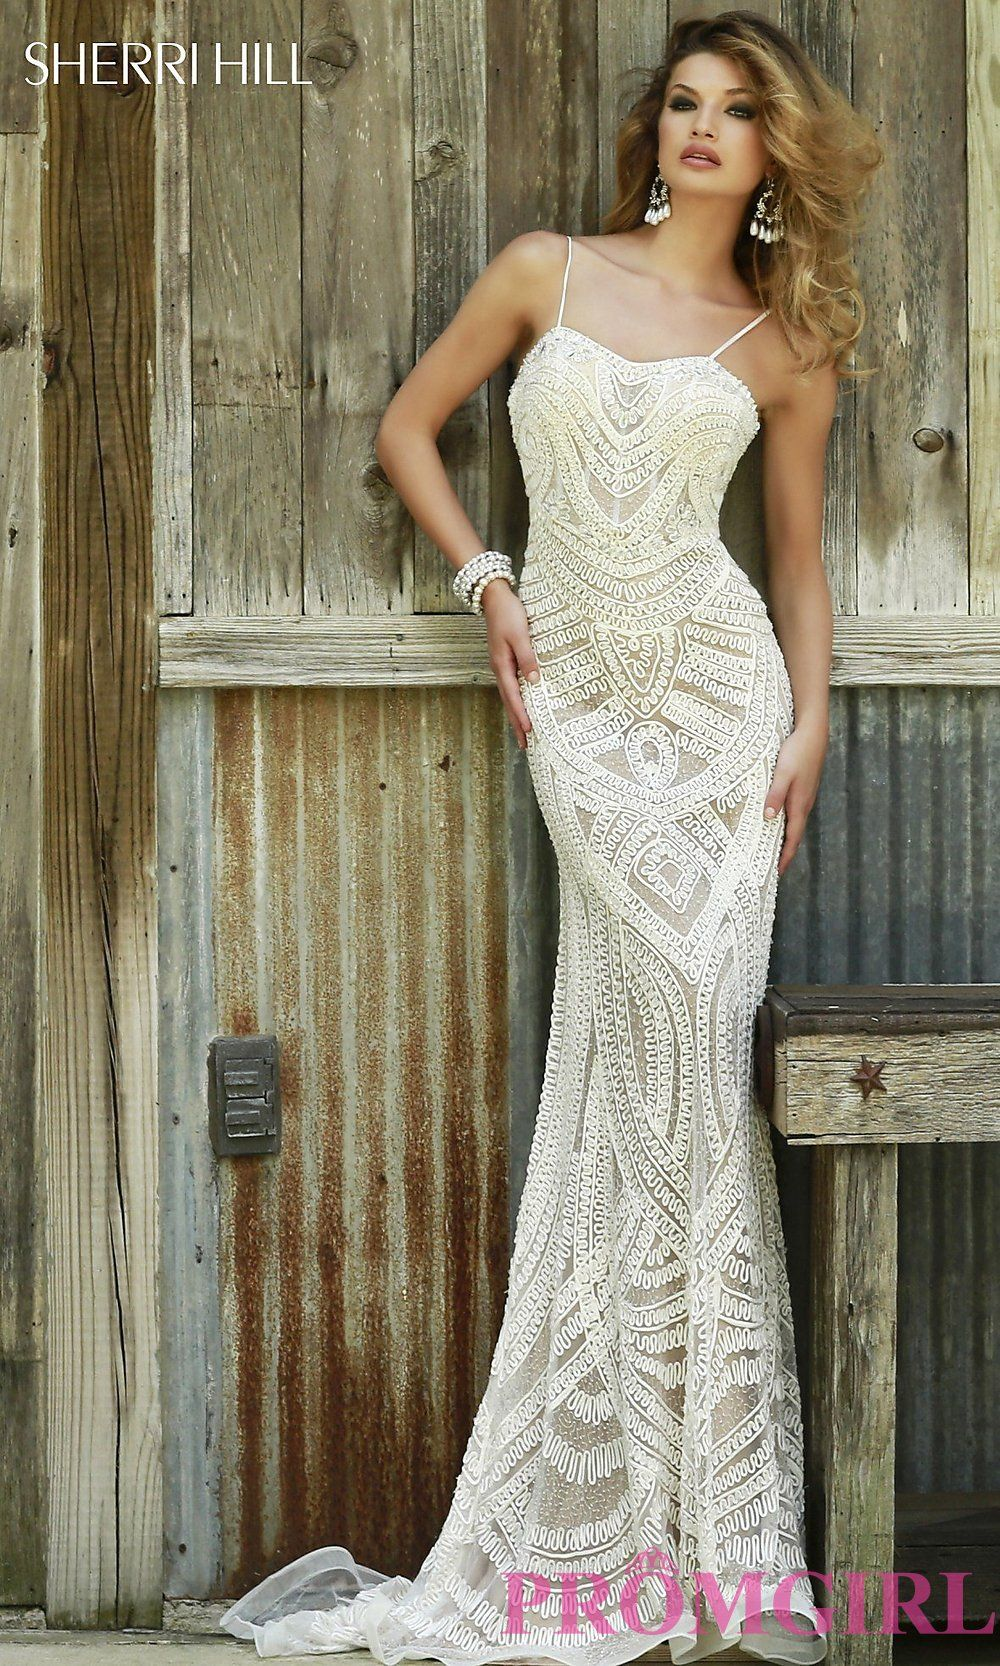 Sherri hill lace wedding dress  Prom Dresses Celebrity Dresses Sexy Evening Gowns  PromGirl Full